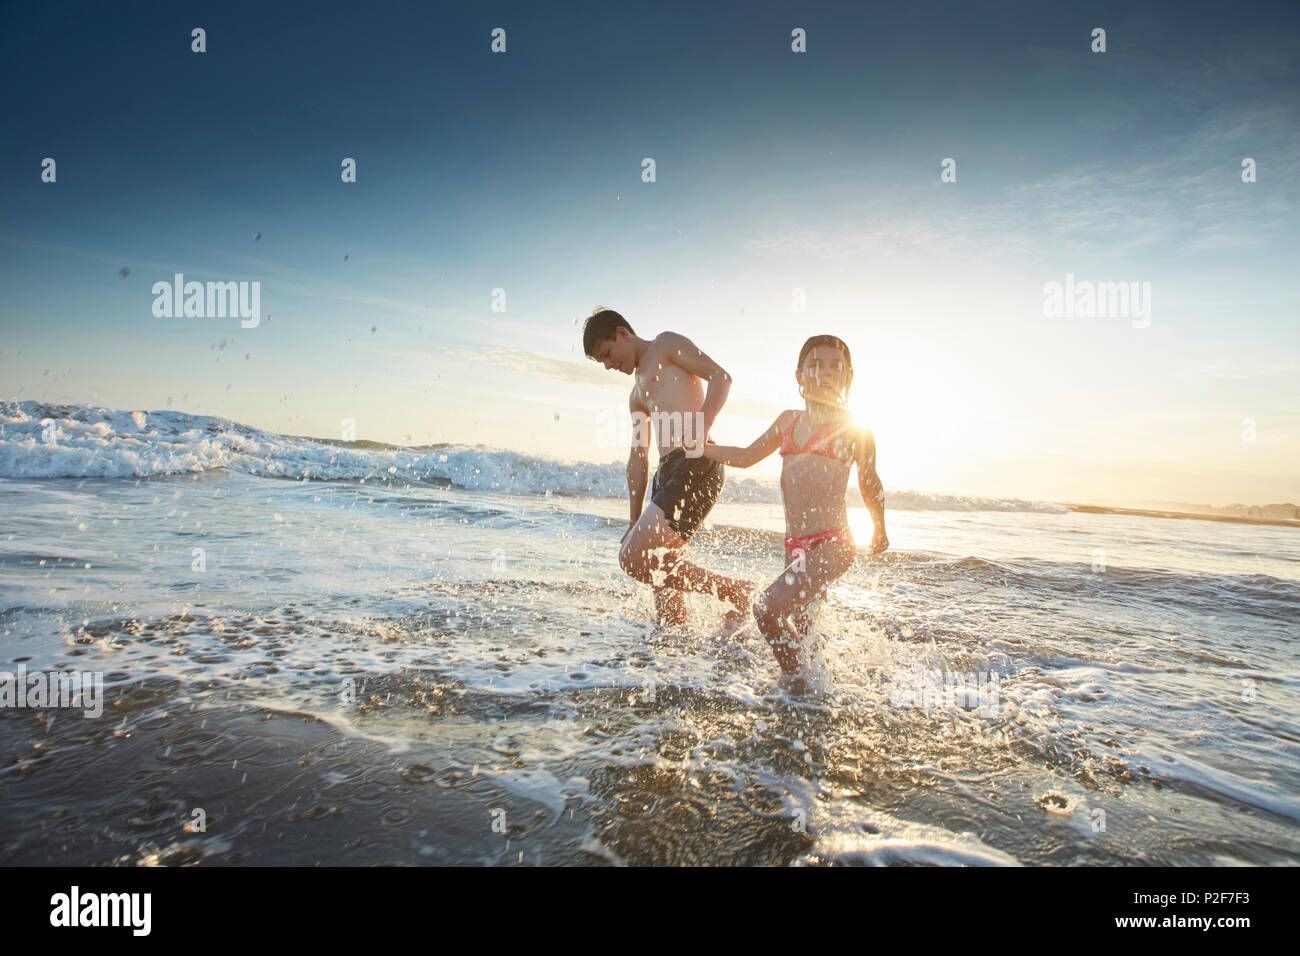 Sibling children on the beach of Canggu, low tide, Bali, Indonesia Stock Photo